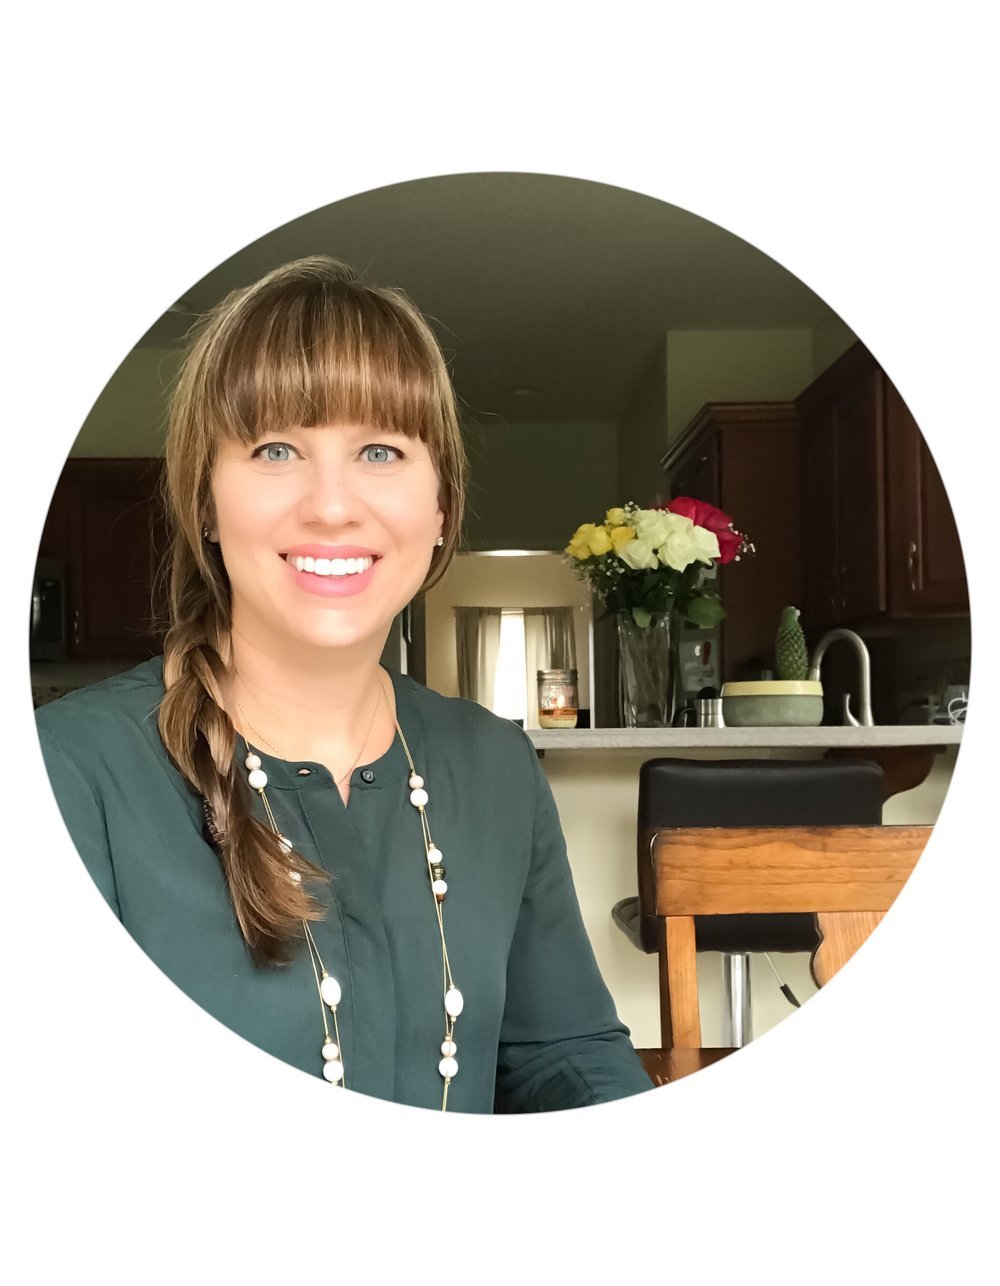 Hi, I'm Shauna and welcome to Balancing Bites Nutrition. My goal is to help you build healthy habits that will lead to a balanced lifestyle. Thanks for visiting.